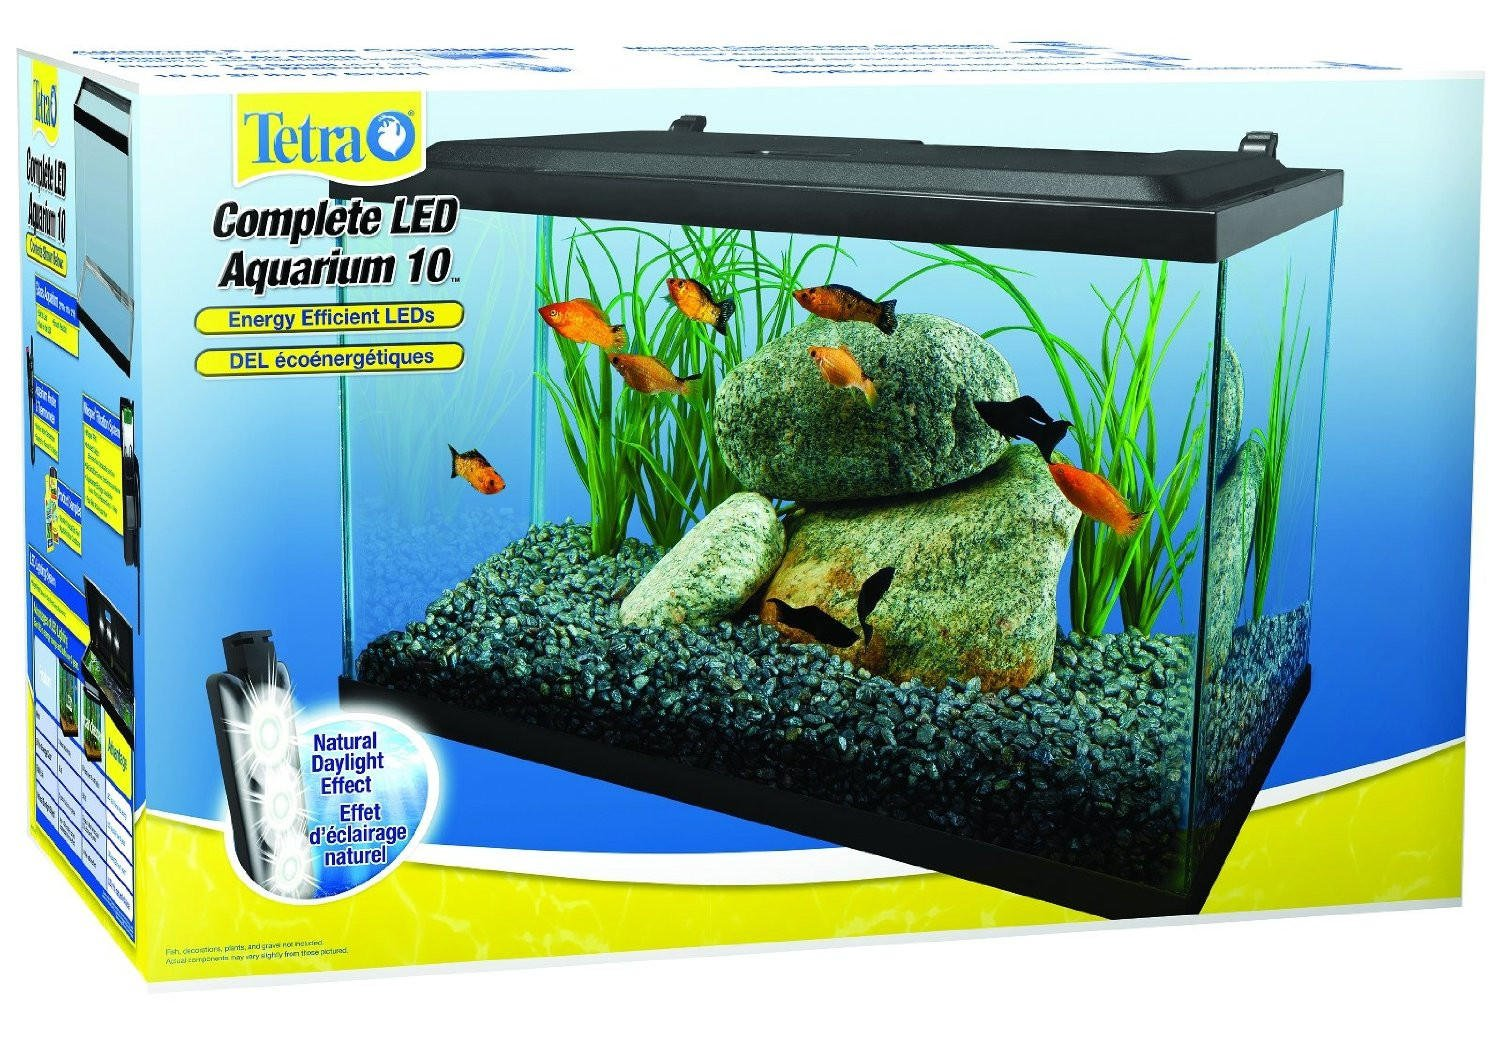 Tetra deluxe led aquarium fish tank kit from gotpetsupplies for 20 gallon fish tank size